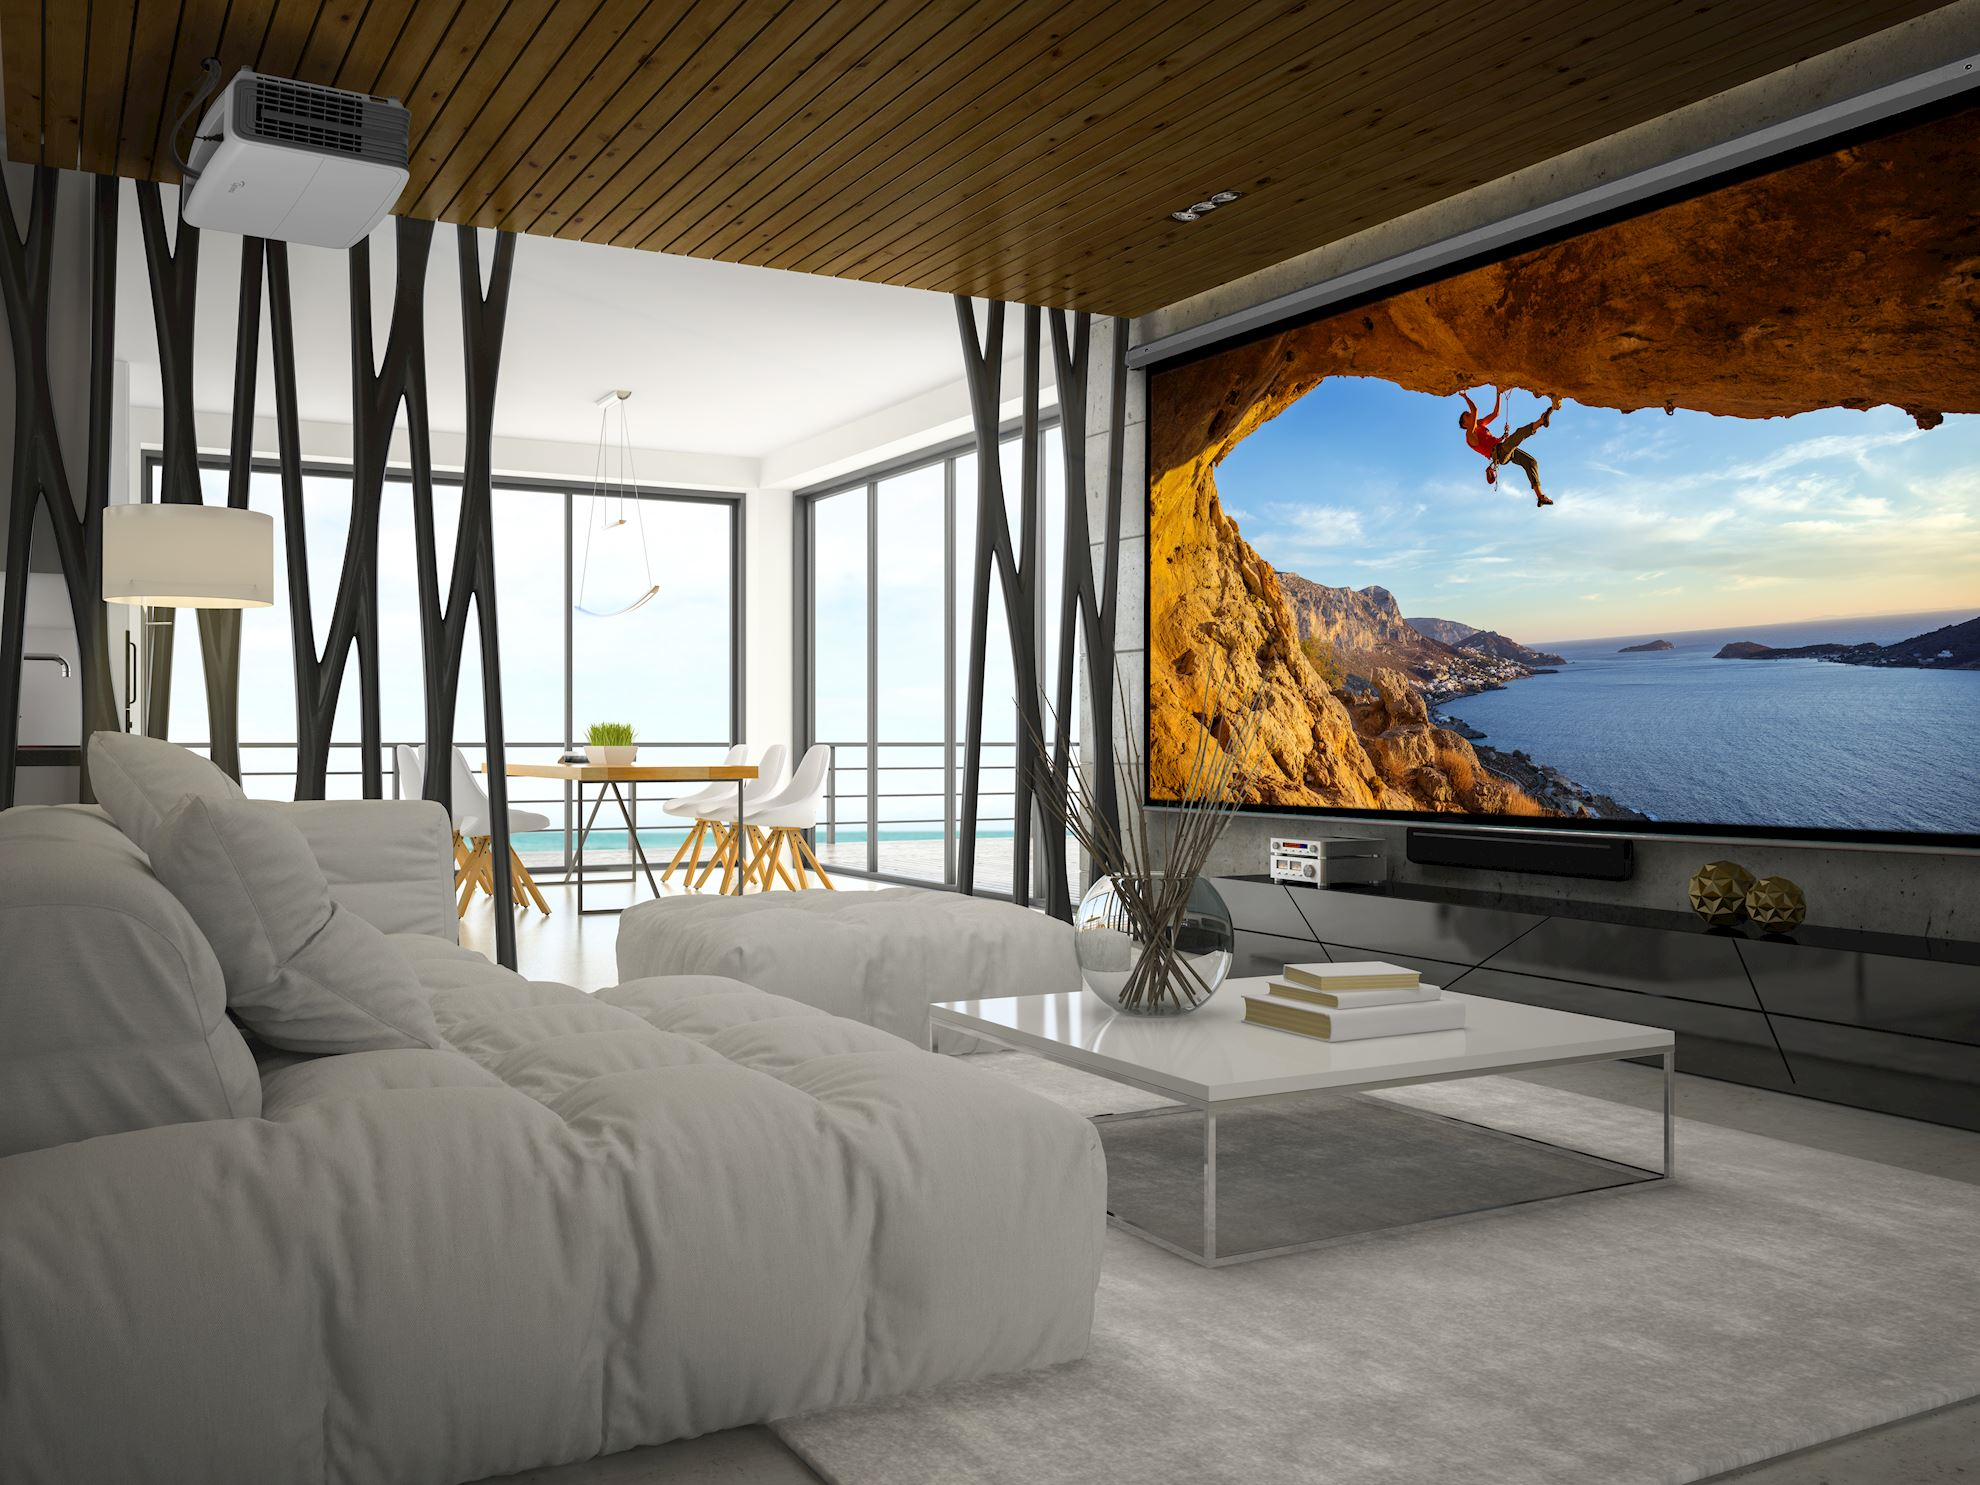 optoma 39 s new 2 000 projector is actually a pretty good. Black Bedroom Furniture Sets. Home Design Ideas